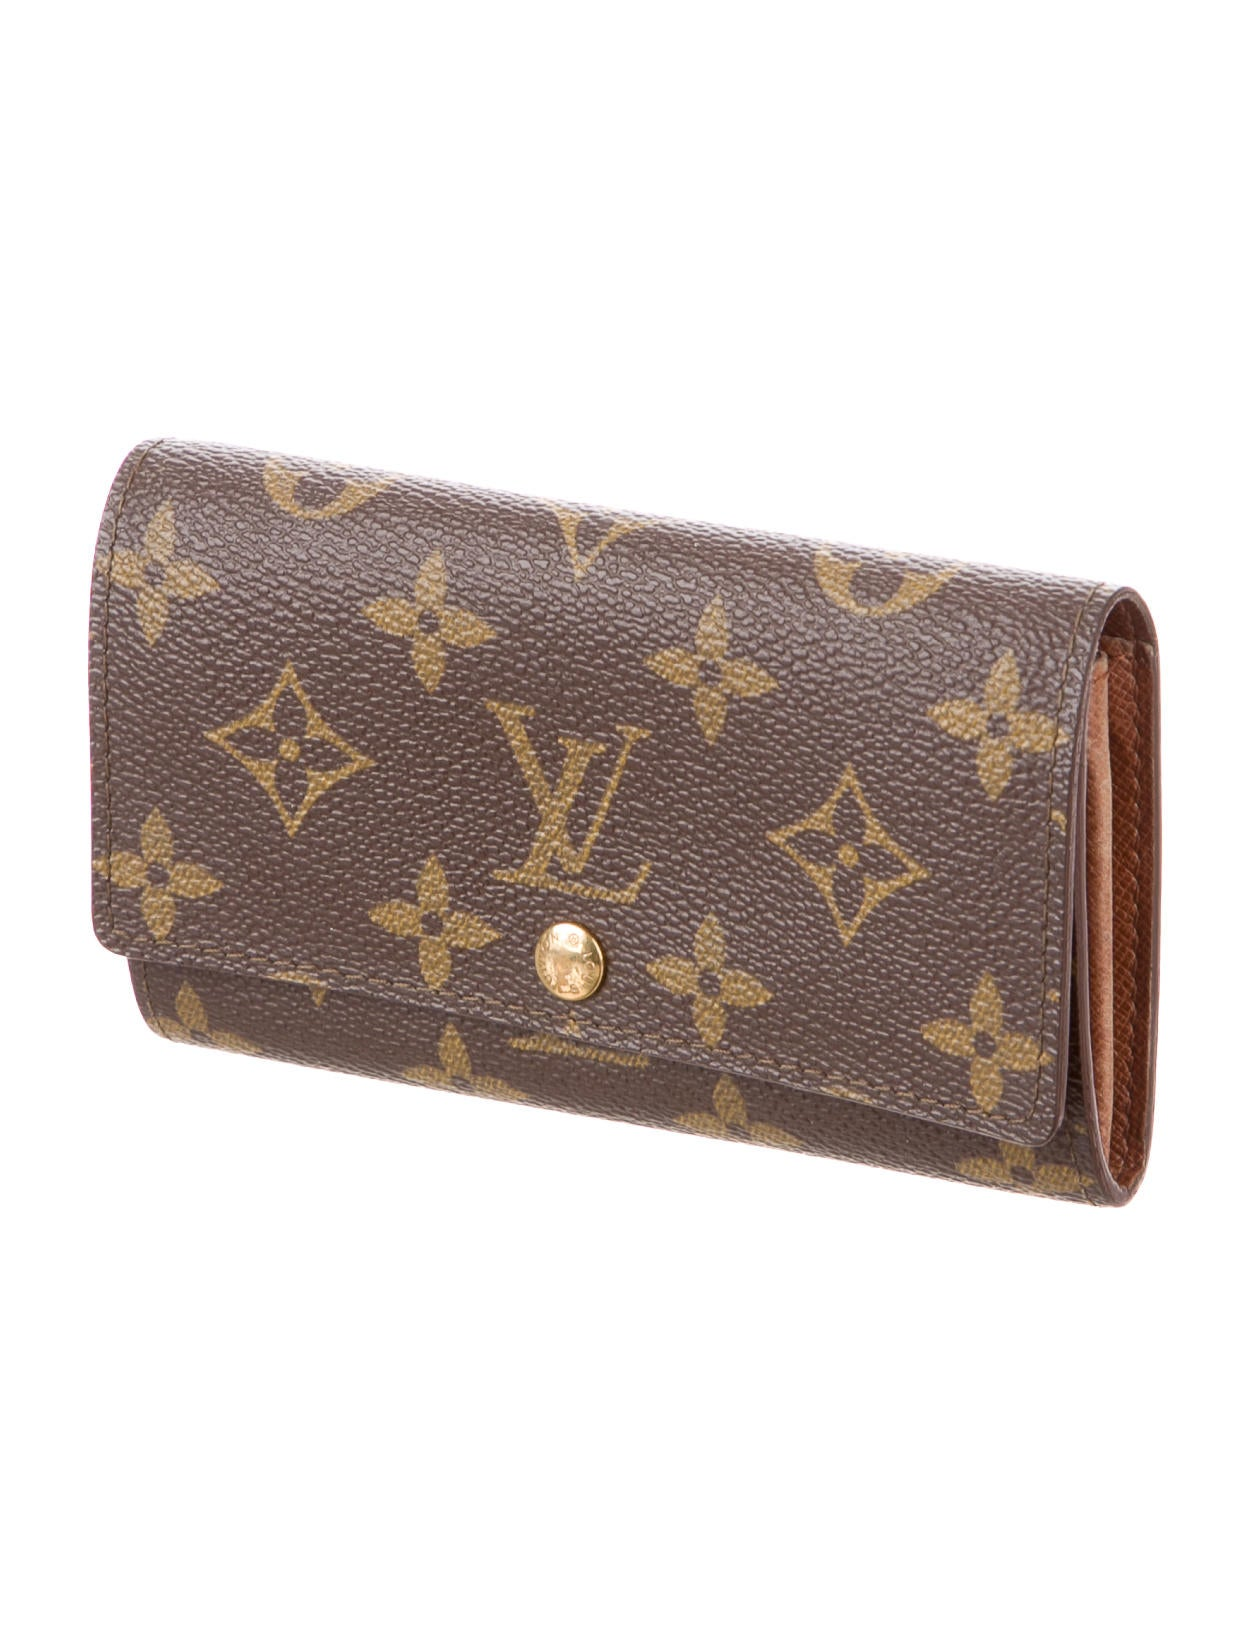 louis vuitton monogram porte monnaie billets accessories lou107077 the realreal